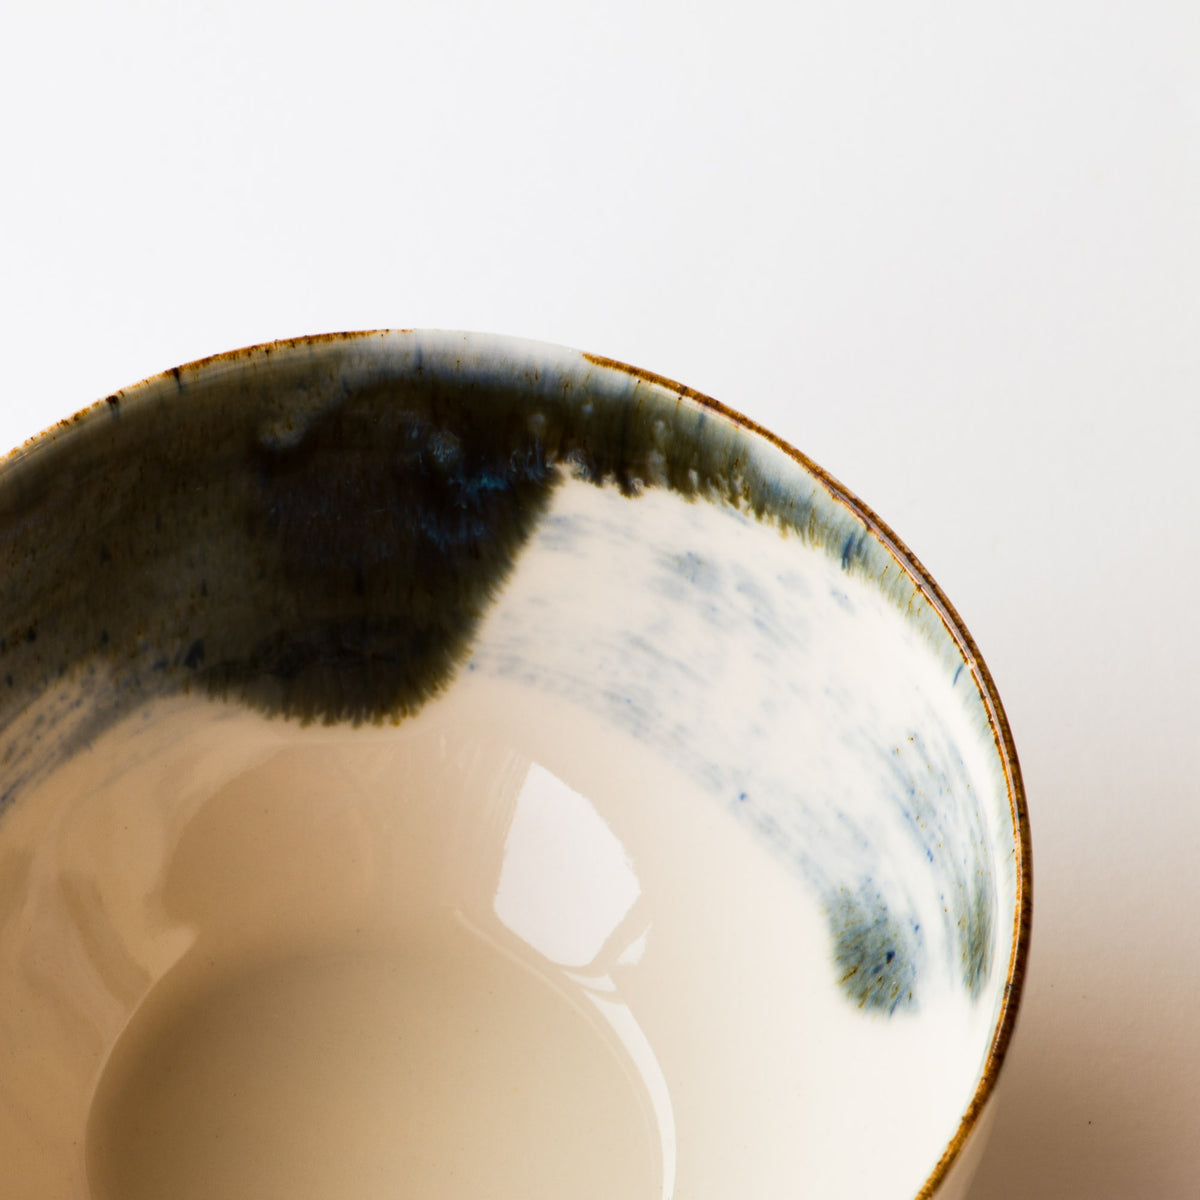 Handmade Porcelain Rice Bowl - Detail of White Painted Porcelain - Sold by Chic & Basta